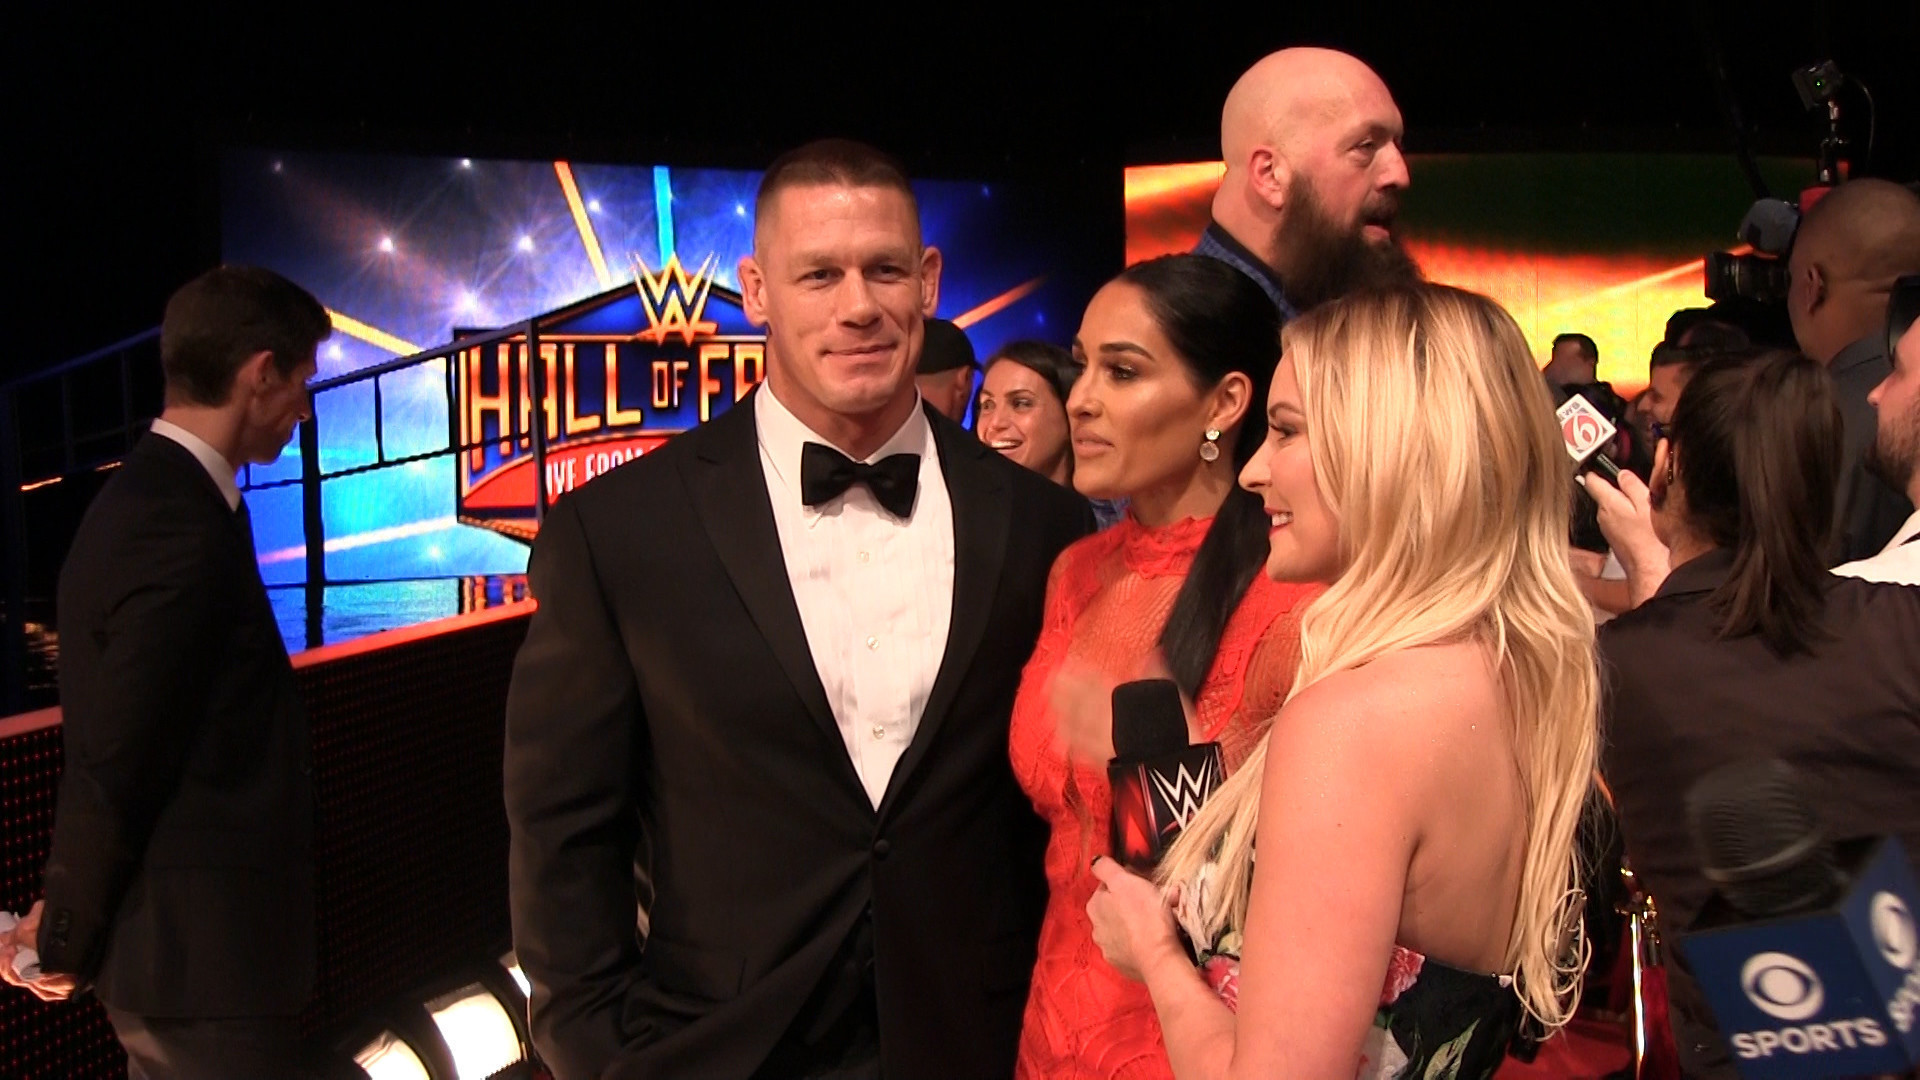 WWE Hall of Fame celebrates the past at Amway Center - Orlando Sentinel